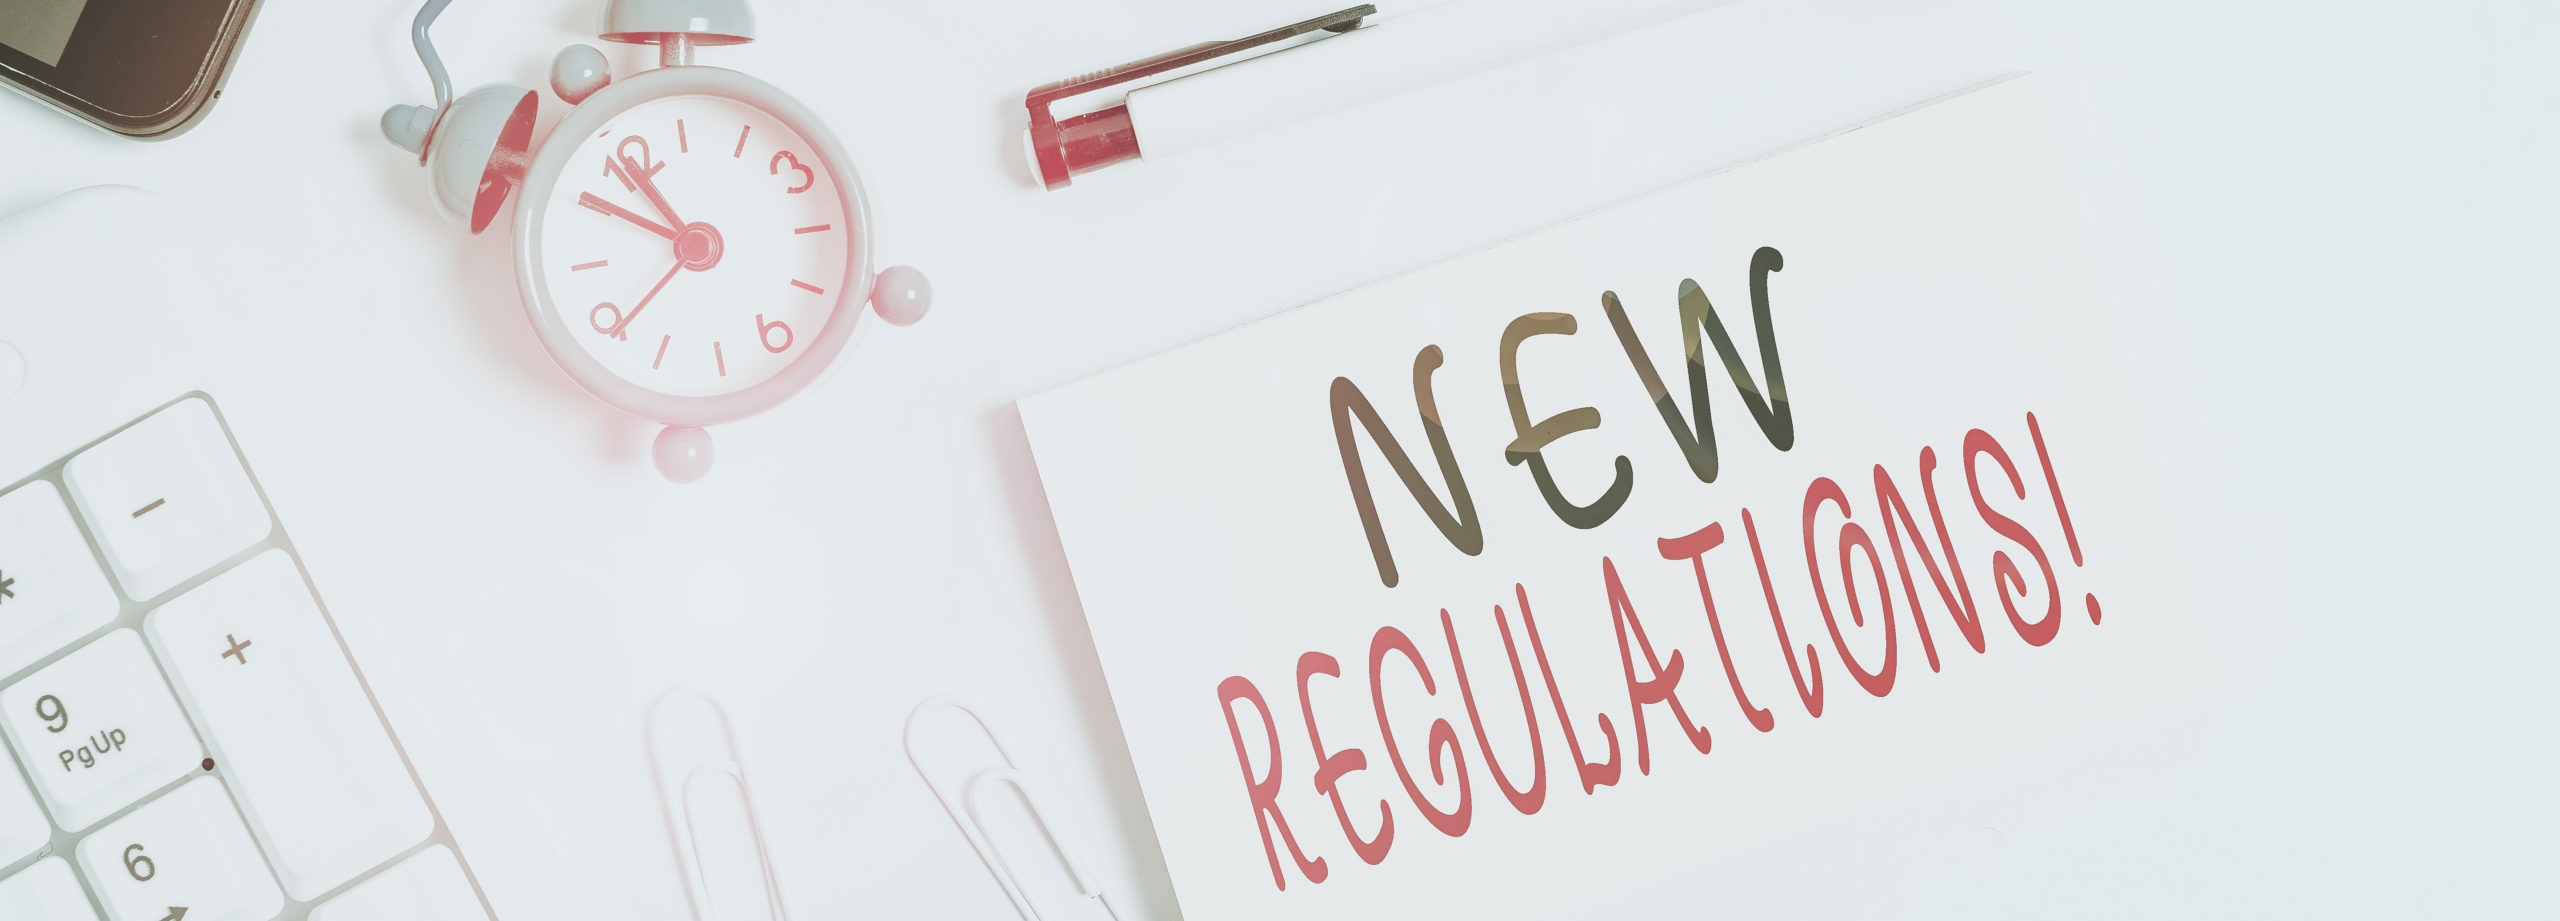 Changes and updates in feed regulation - 2019 overview